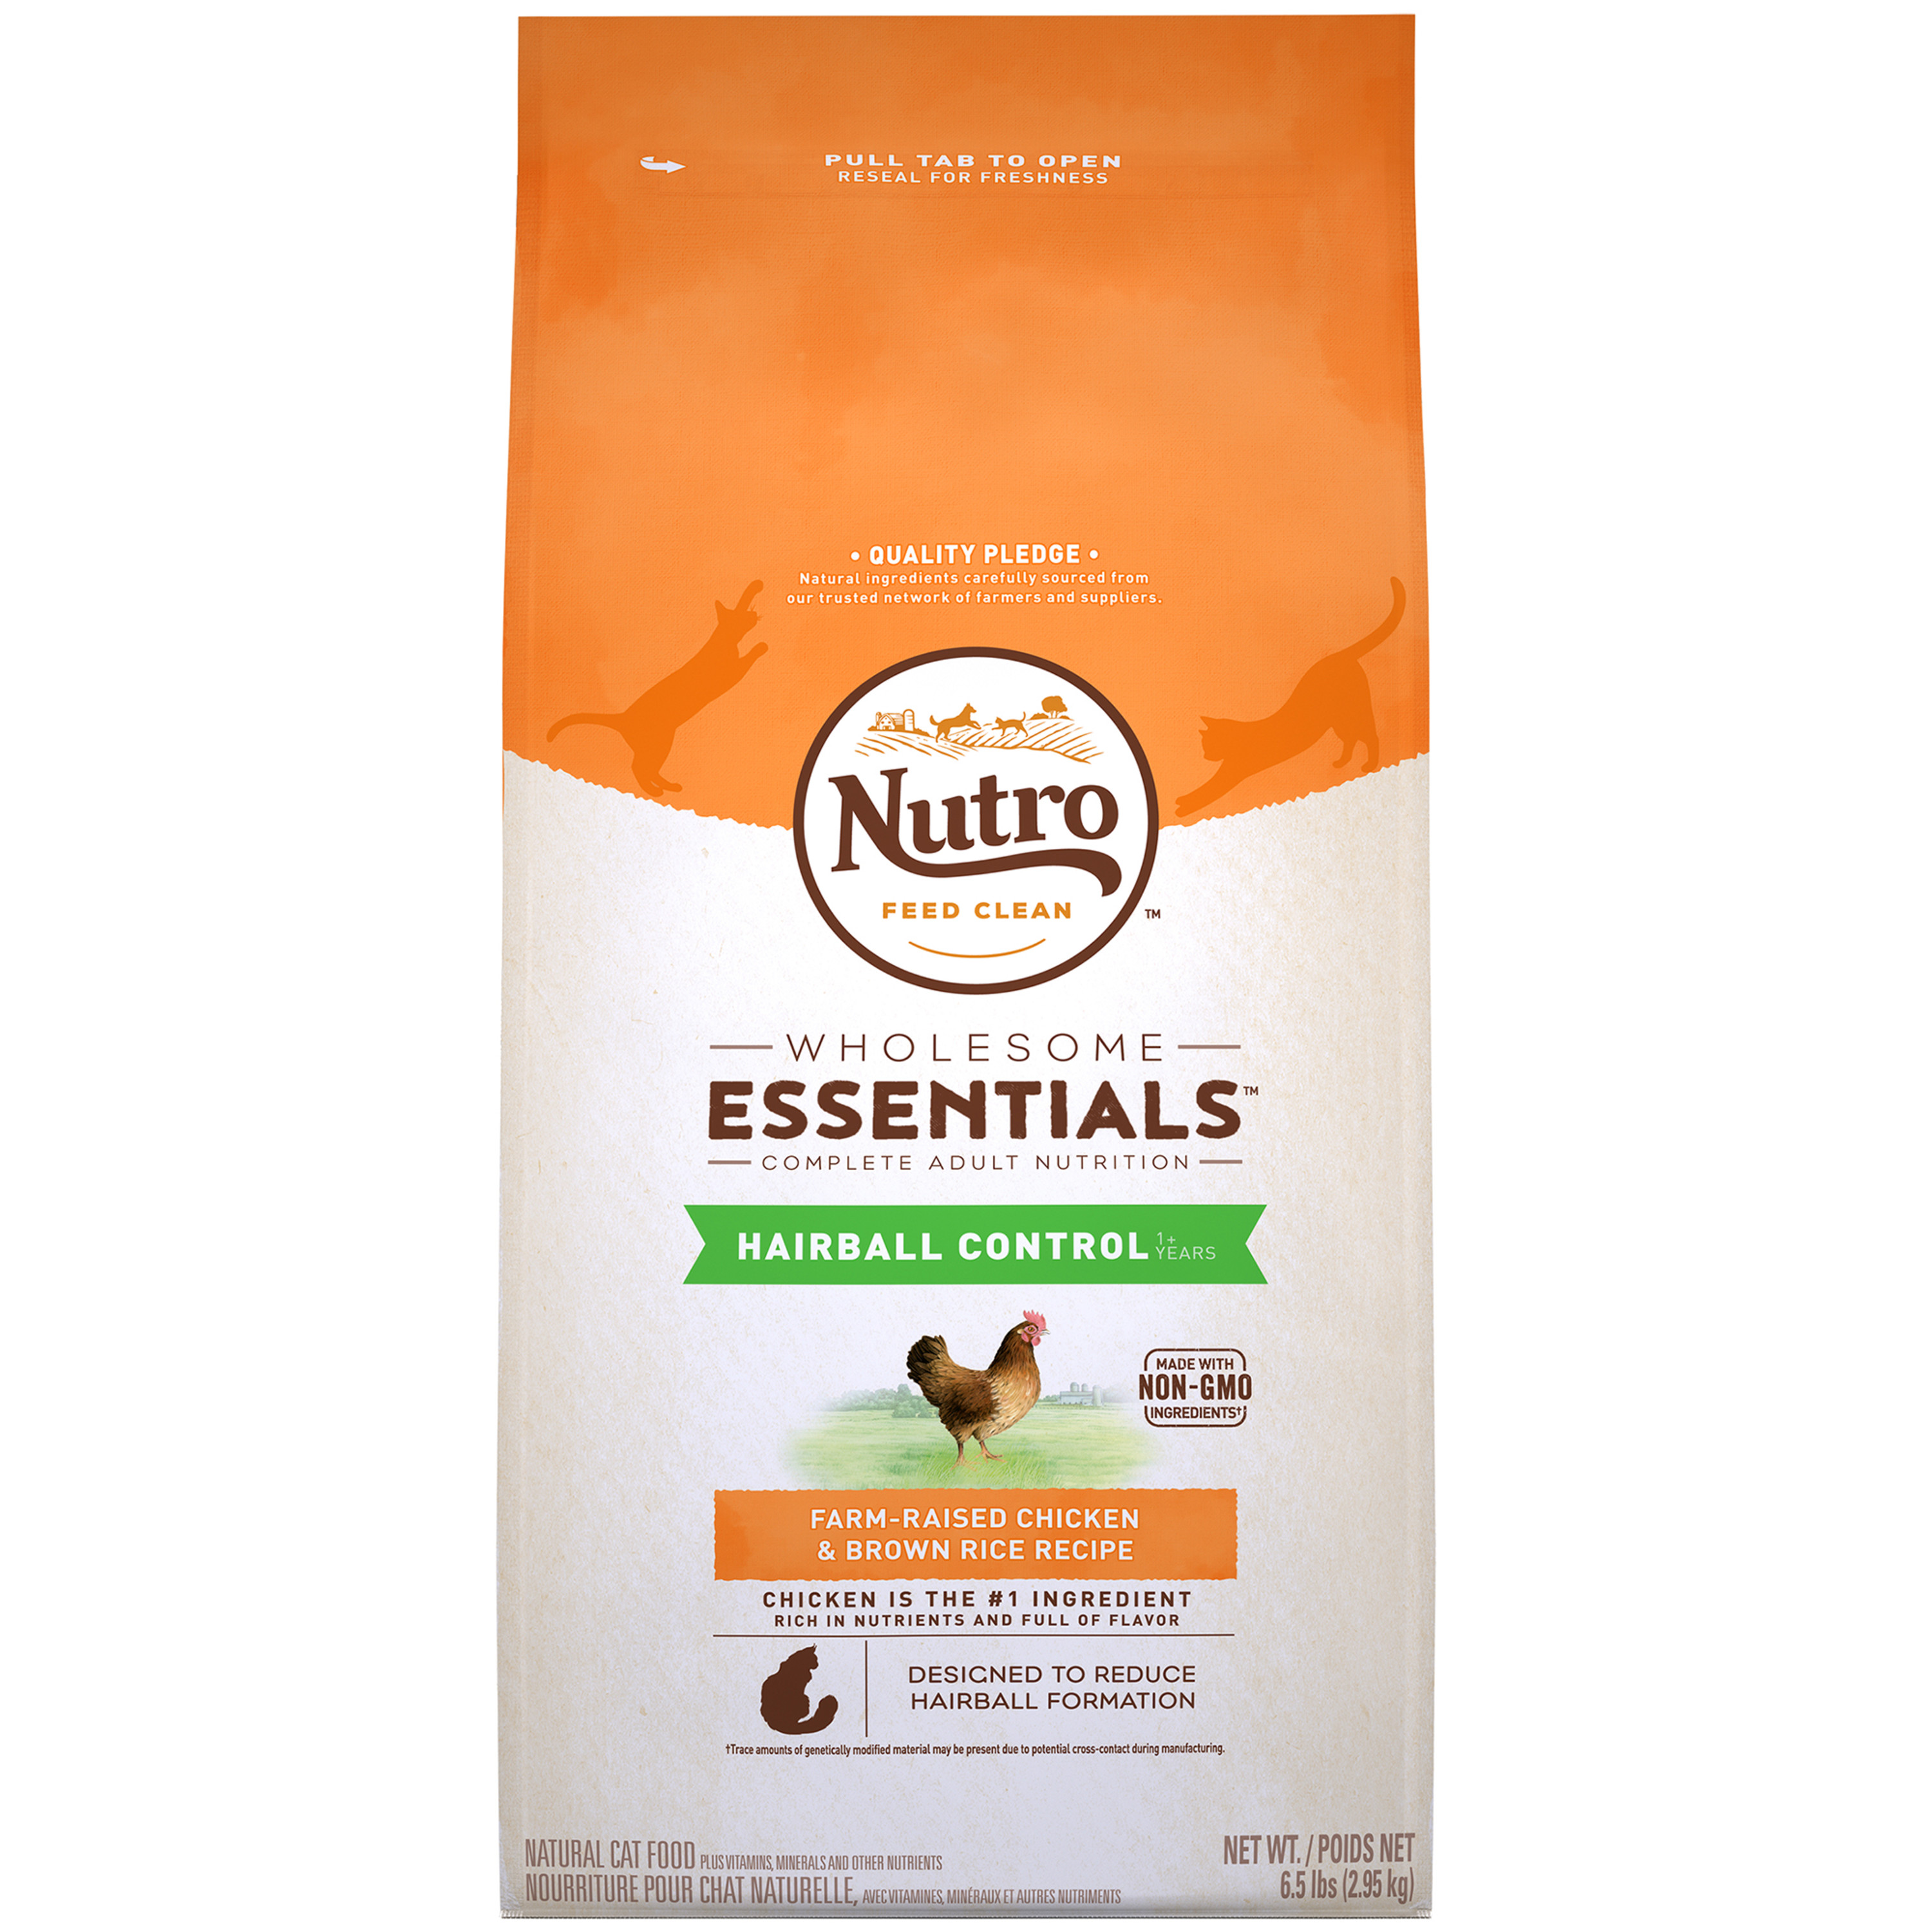 Nutro Wholesome Essentials Hairball Control Farm-Raised Chicken & Brown Rice Adult Dry Cat Food, 6.5 lb